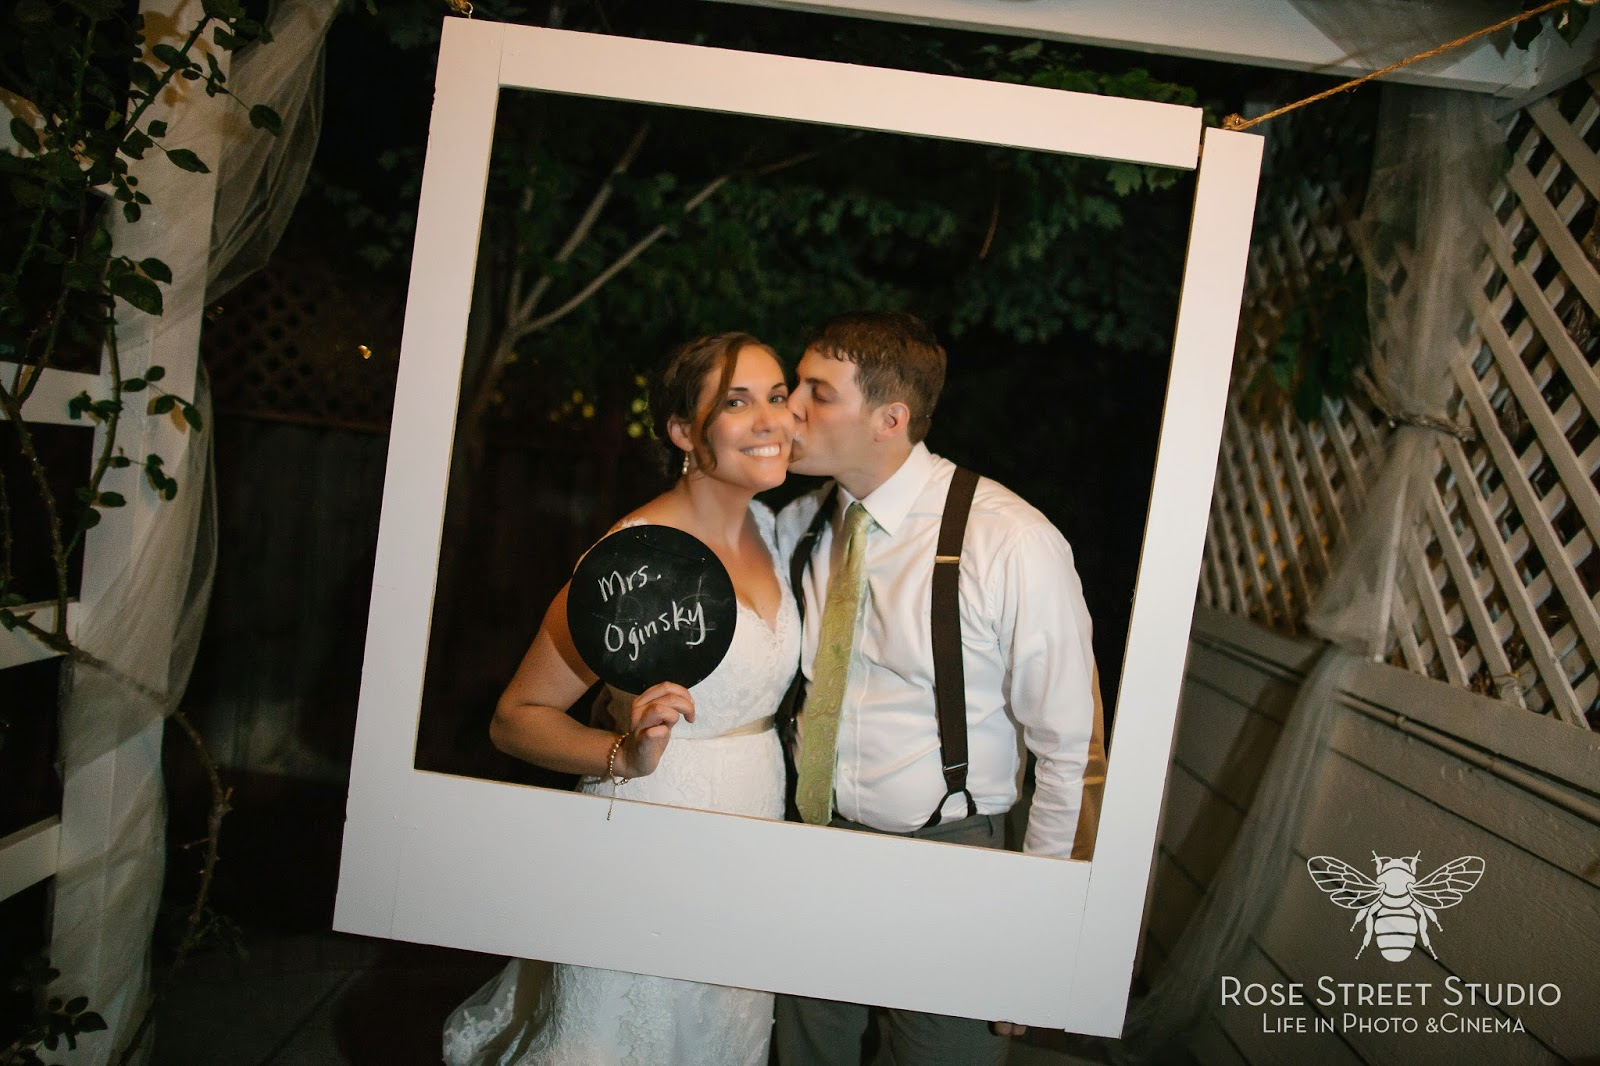 DIY Polaroid Wedding Photobooth l Take the Cake Event Planning